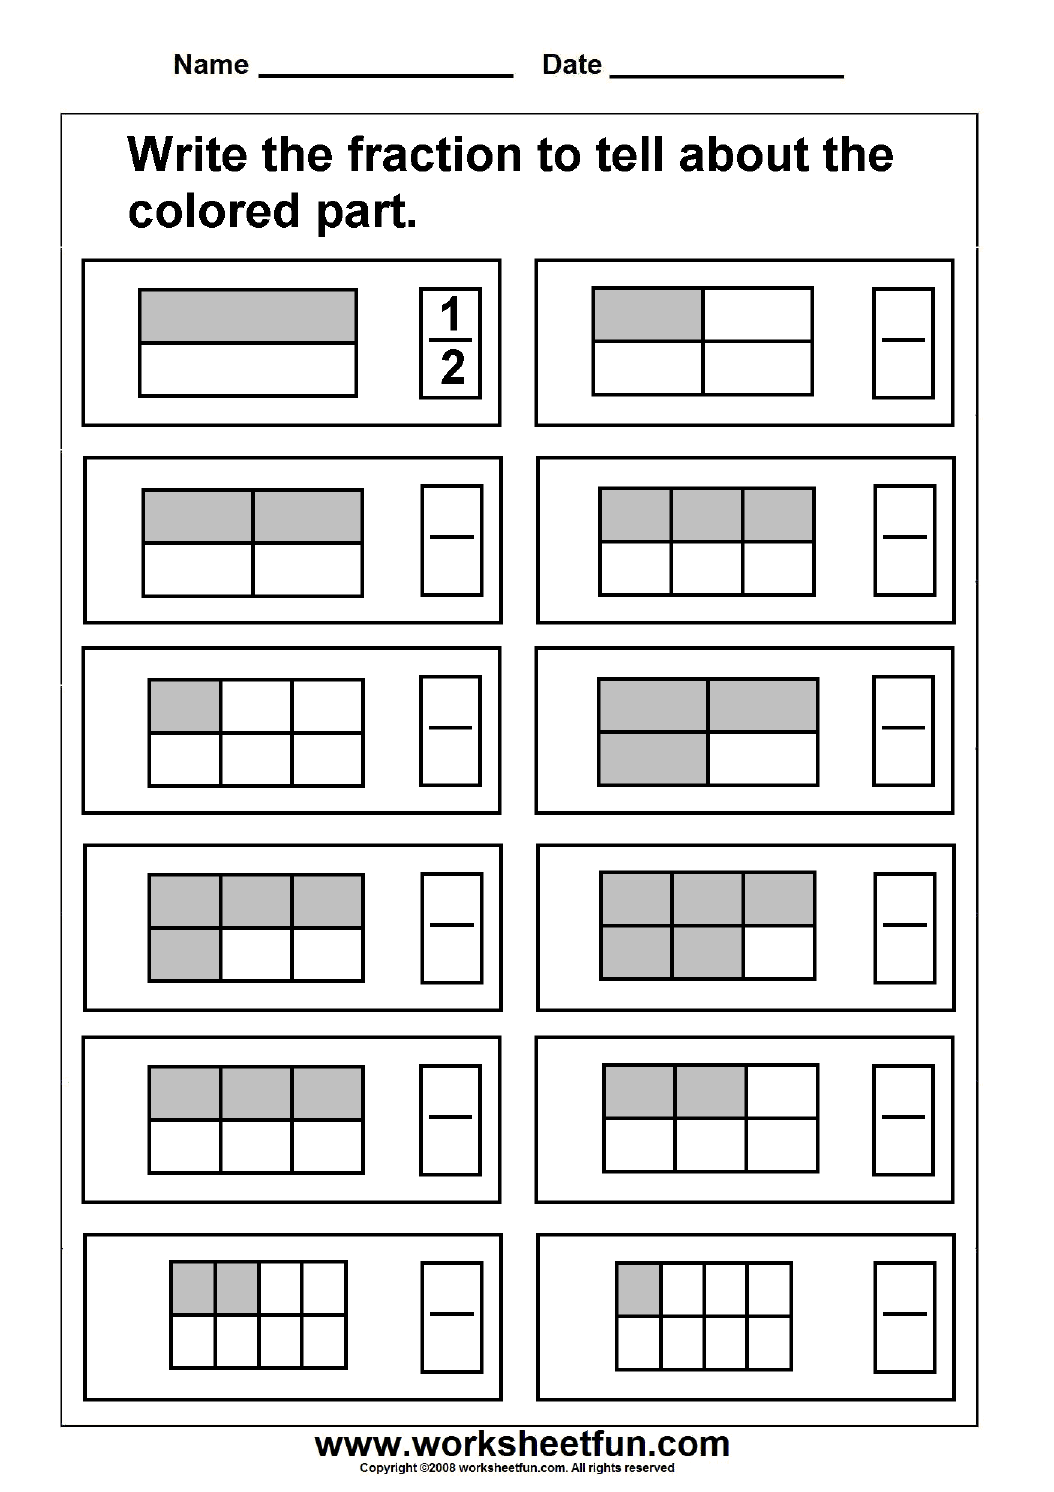 Third Grade Math Worksheets Of Free Fraction Worksheets